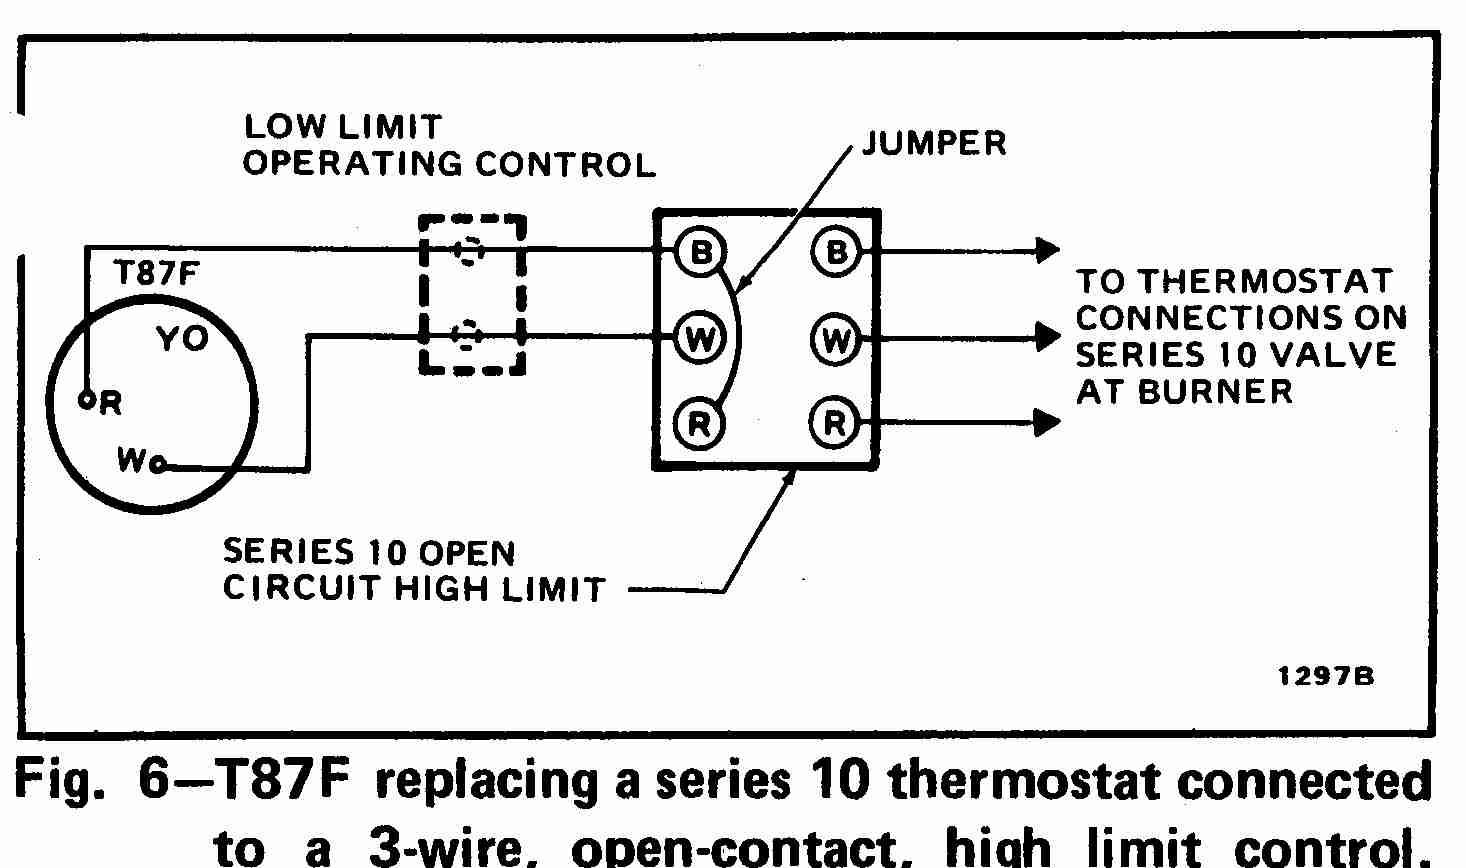 TT_T87F_0002_3WHL_DJF room thermostat wiring diagrams for hvac systems thermostat wiring diagram at soozxer.org